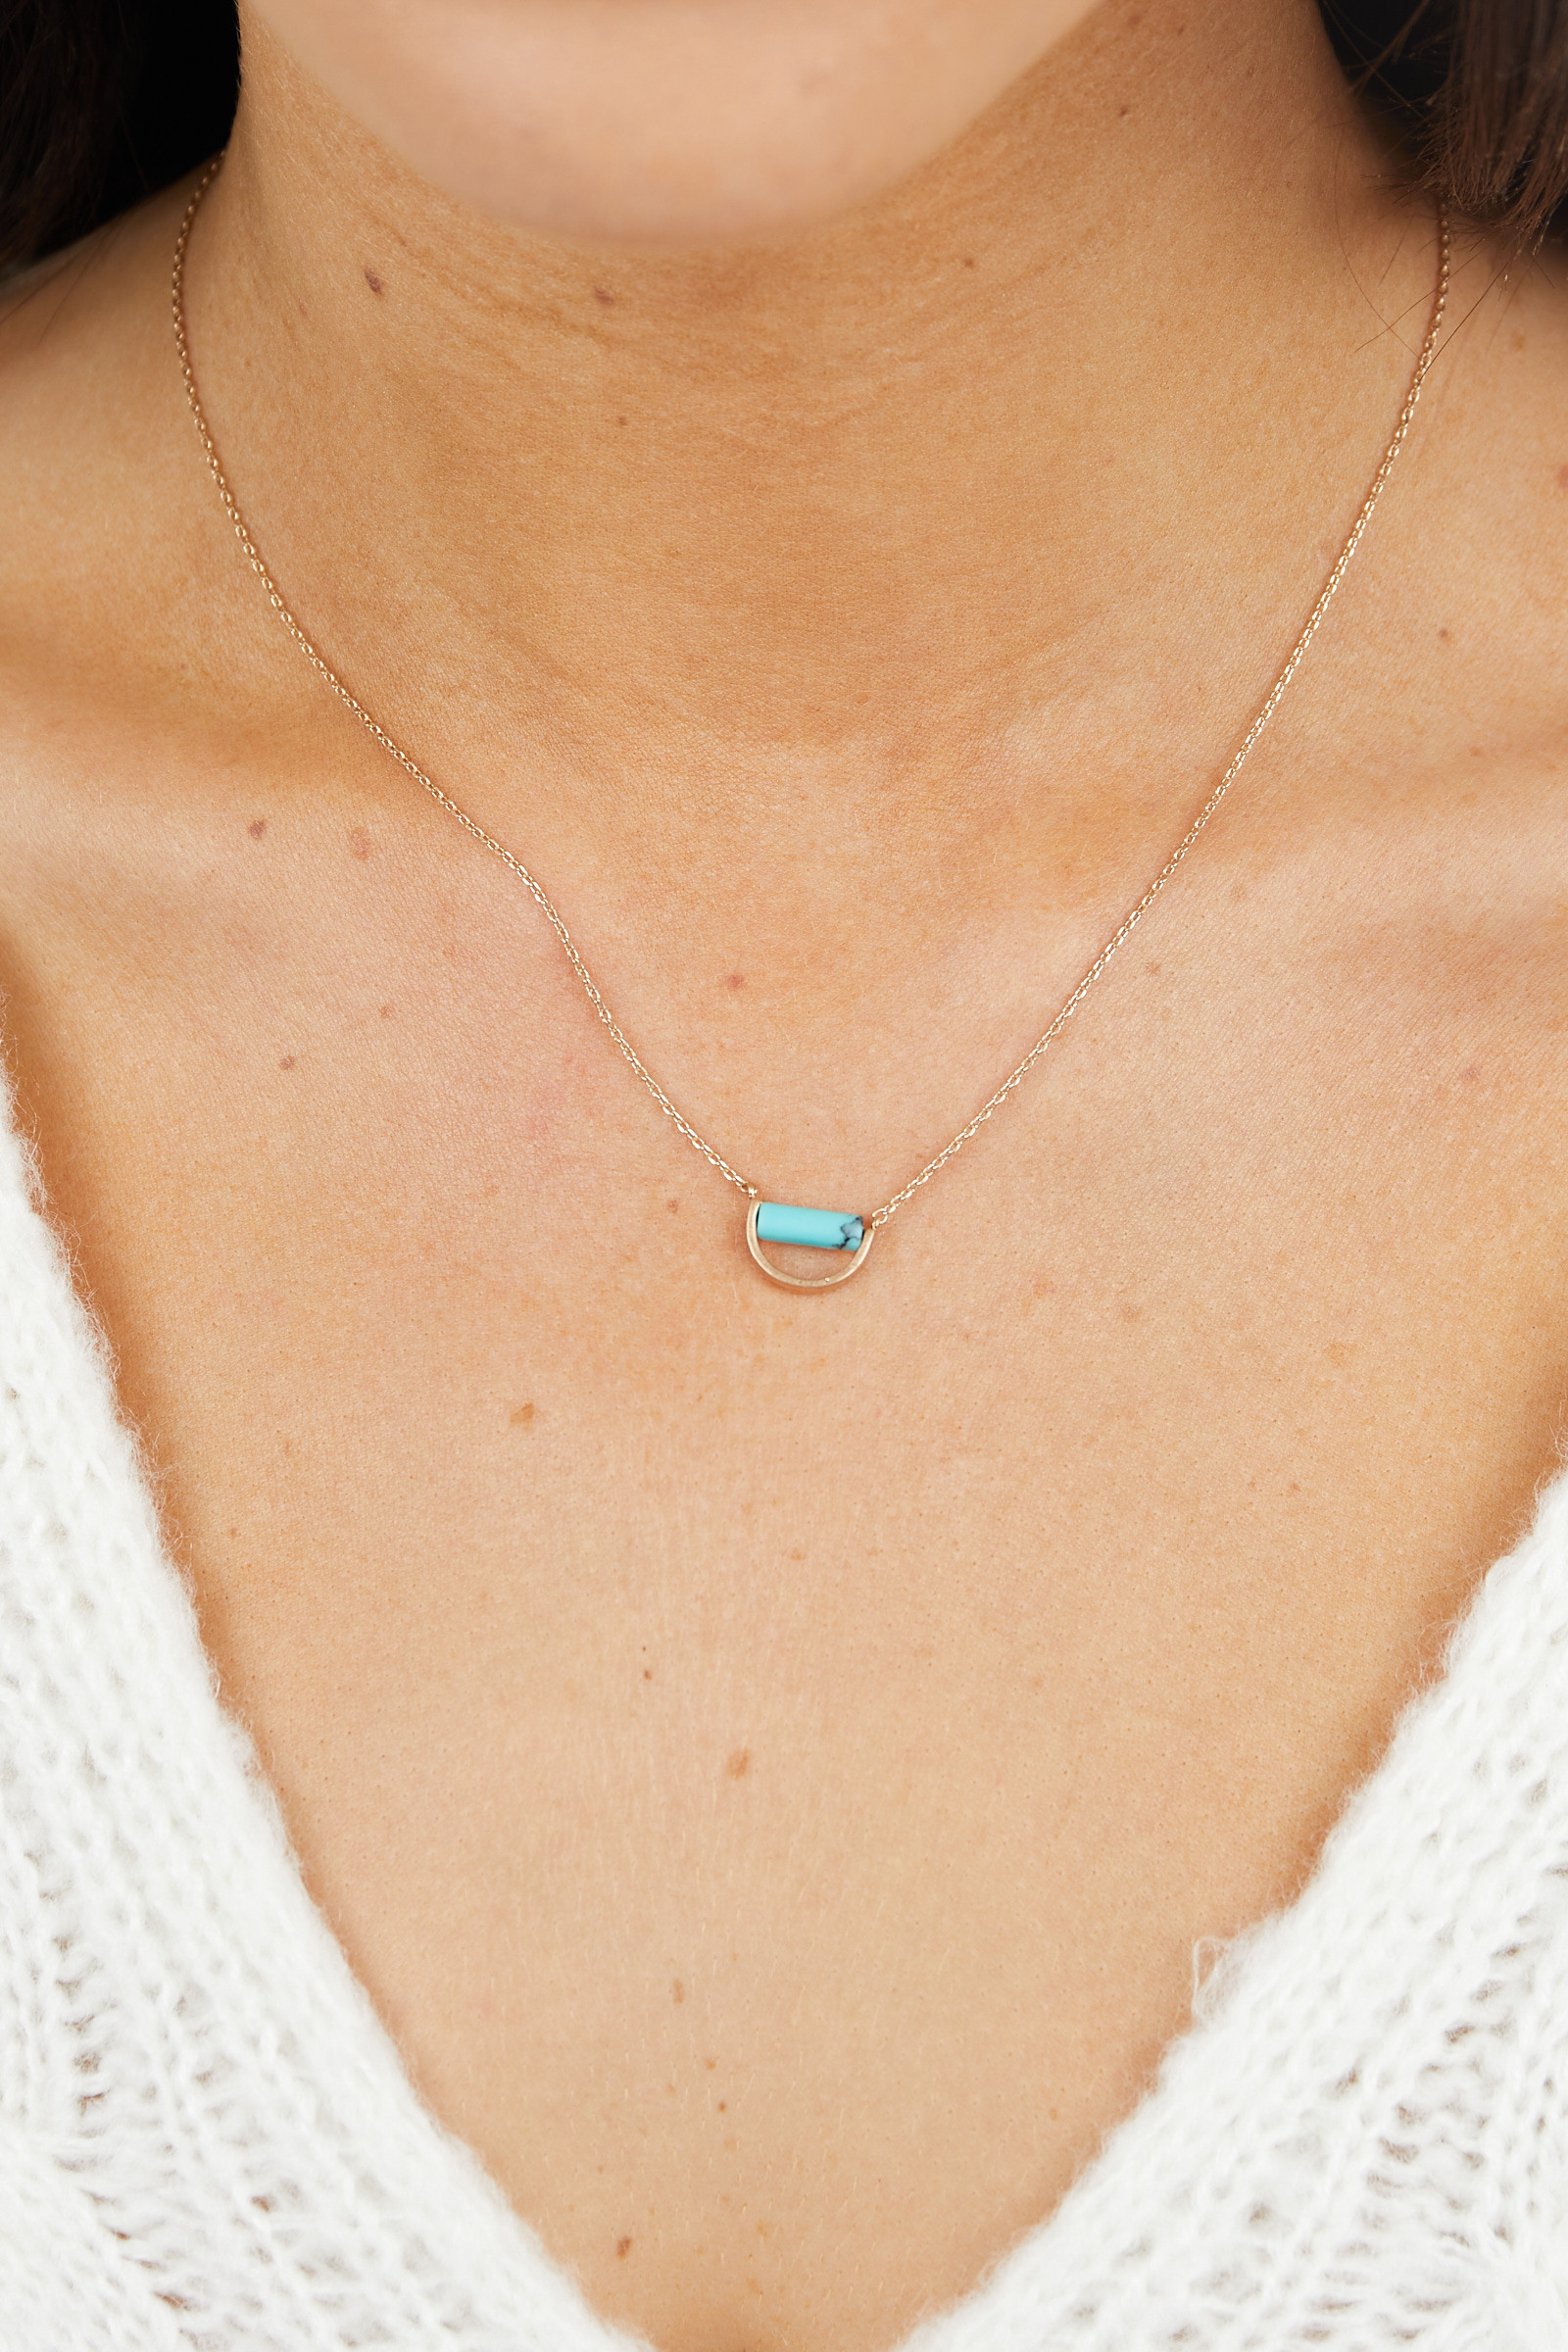 Gold Chain Necklace with Aqua Semicircle Pendant